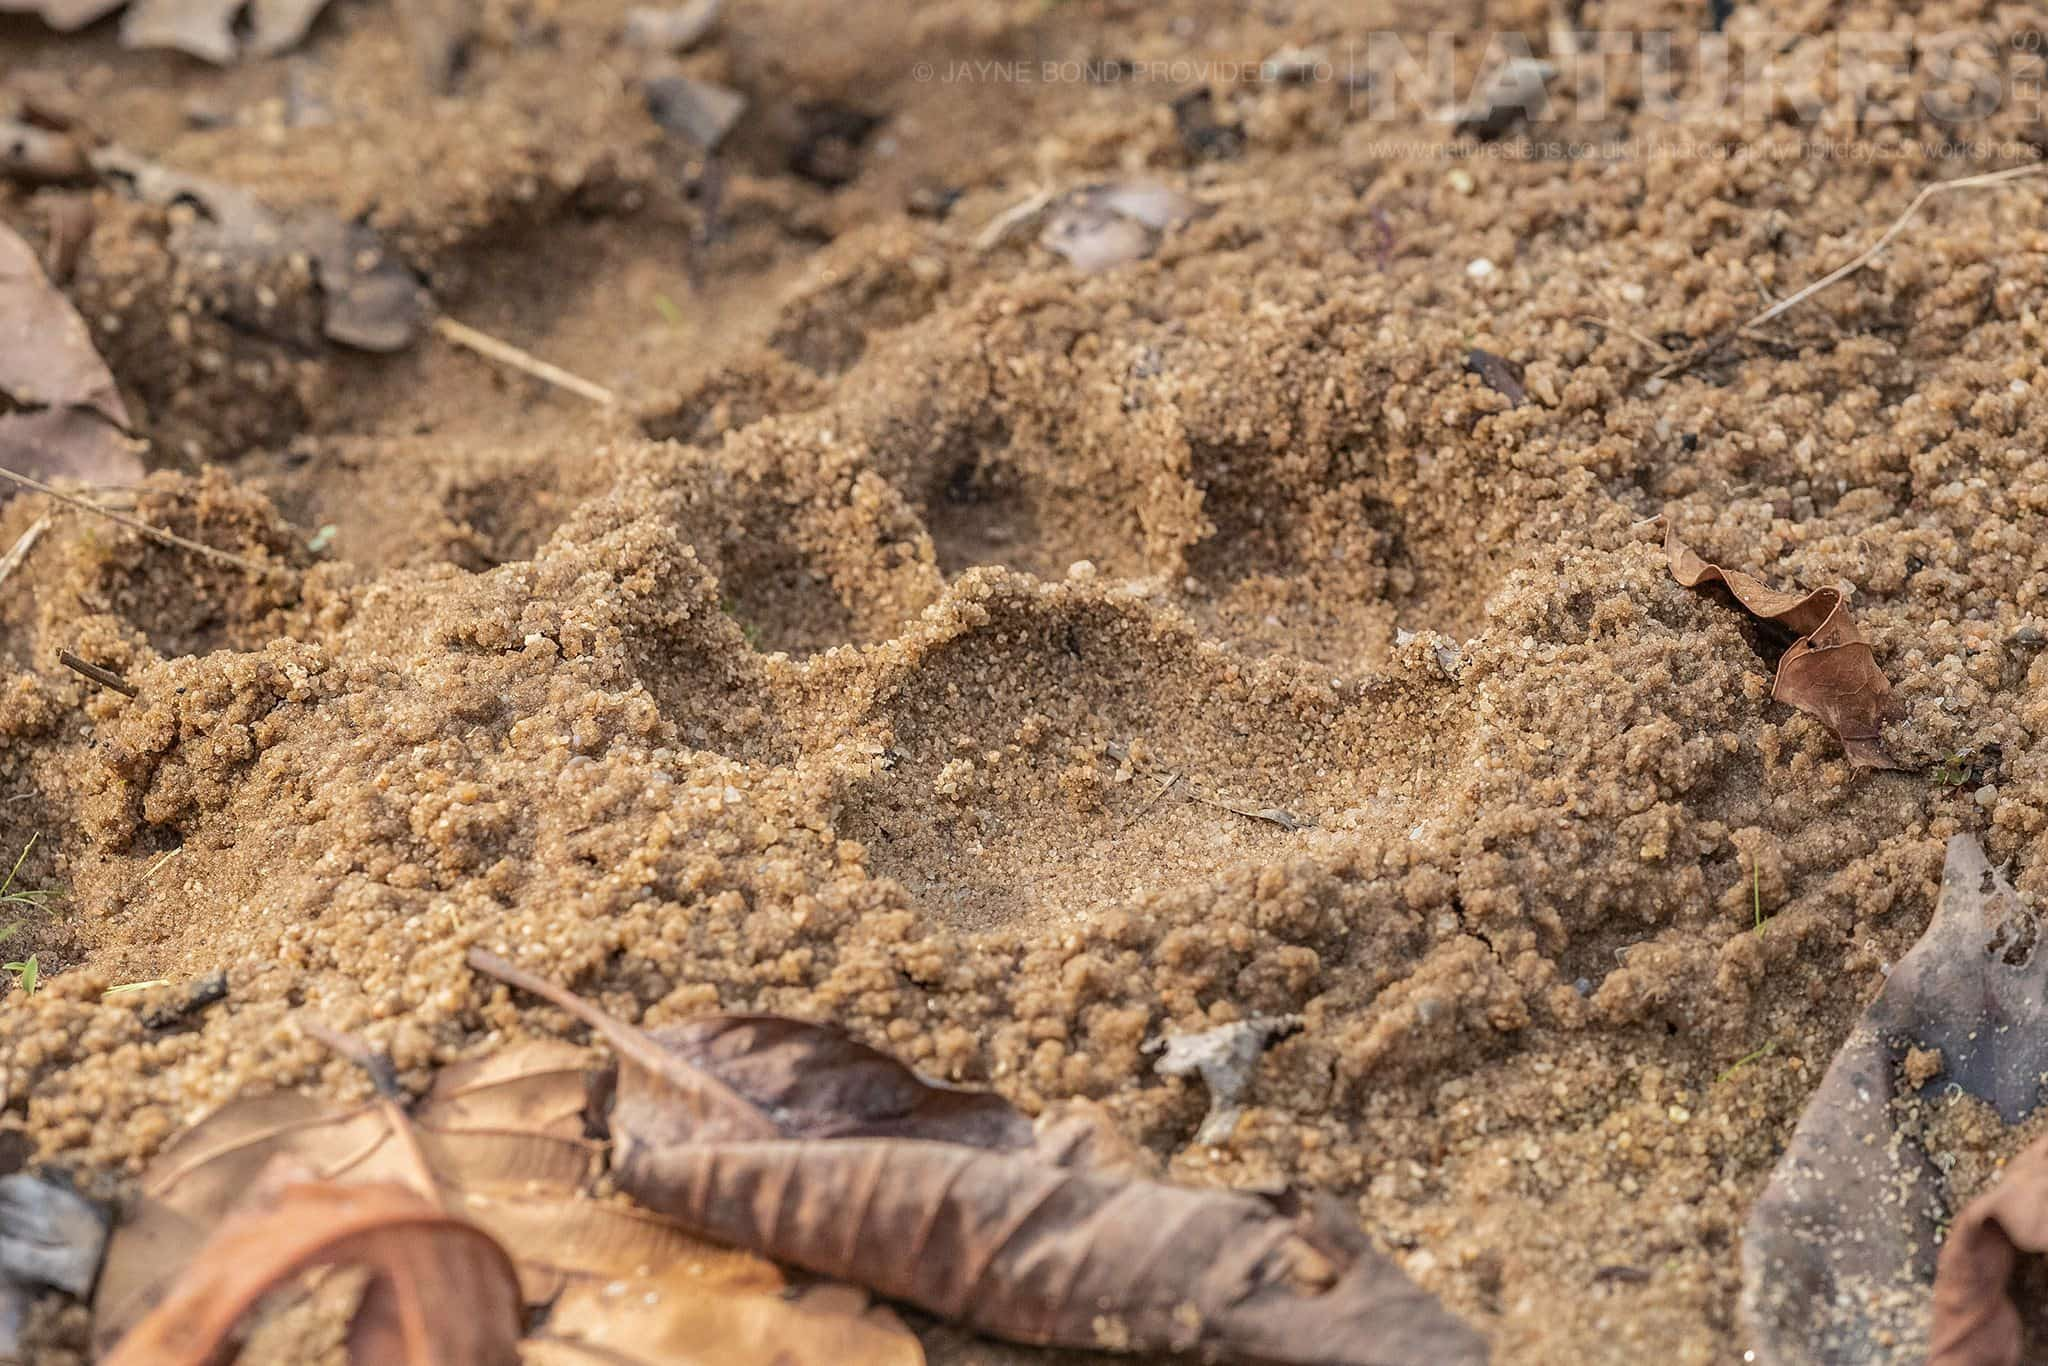 A Pugmark Left By A Tiger Overnight   Photographed During The NaturesLens Tigers Of Bandhavgarh Photography Holiday